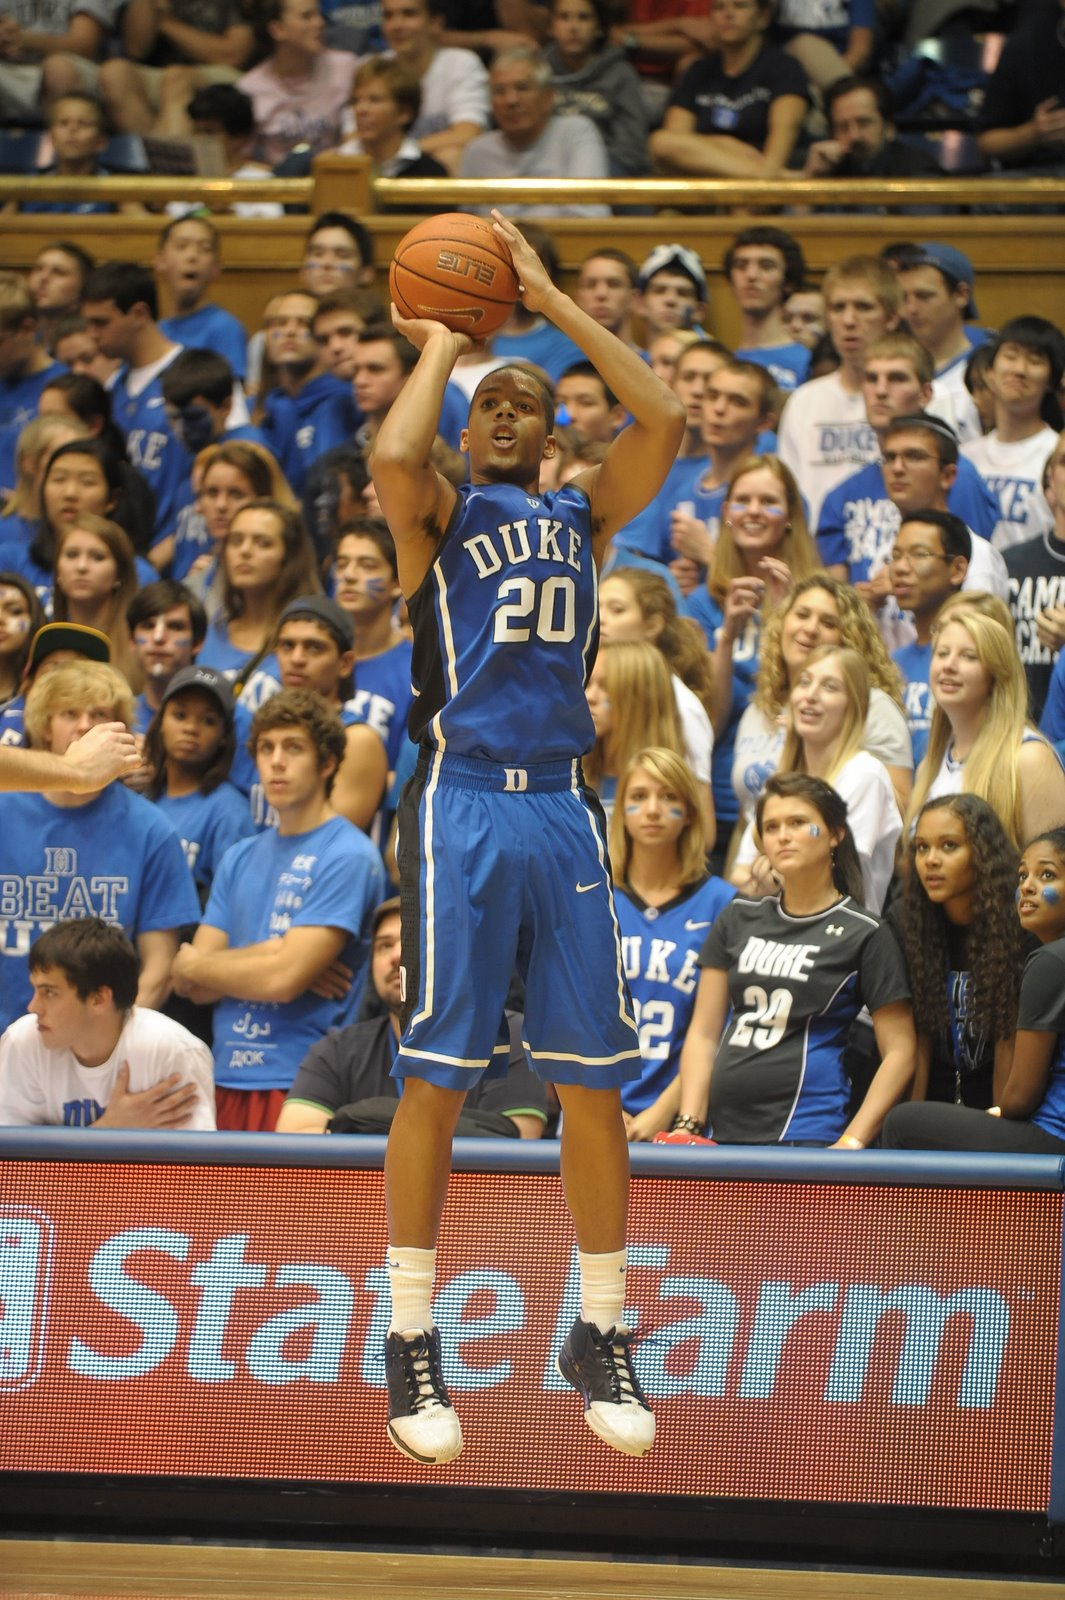 Dre for 3!  Photo copyright BDN/Rick Crank